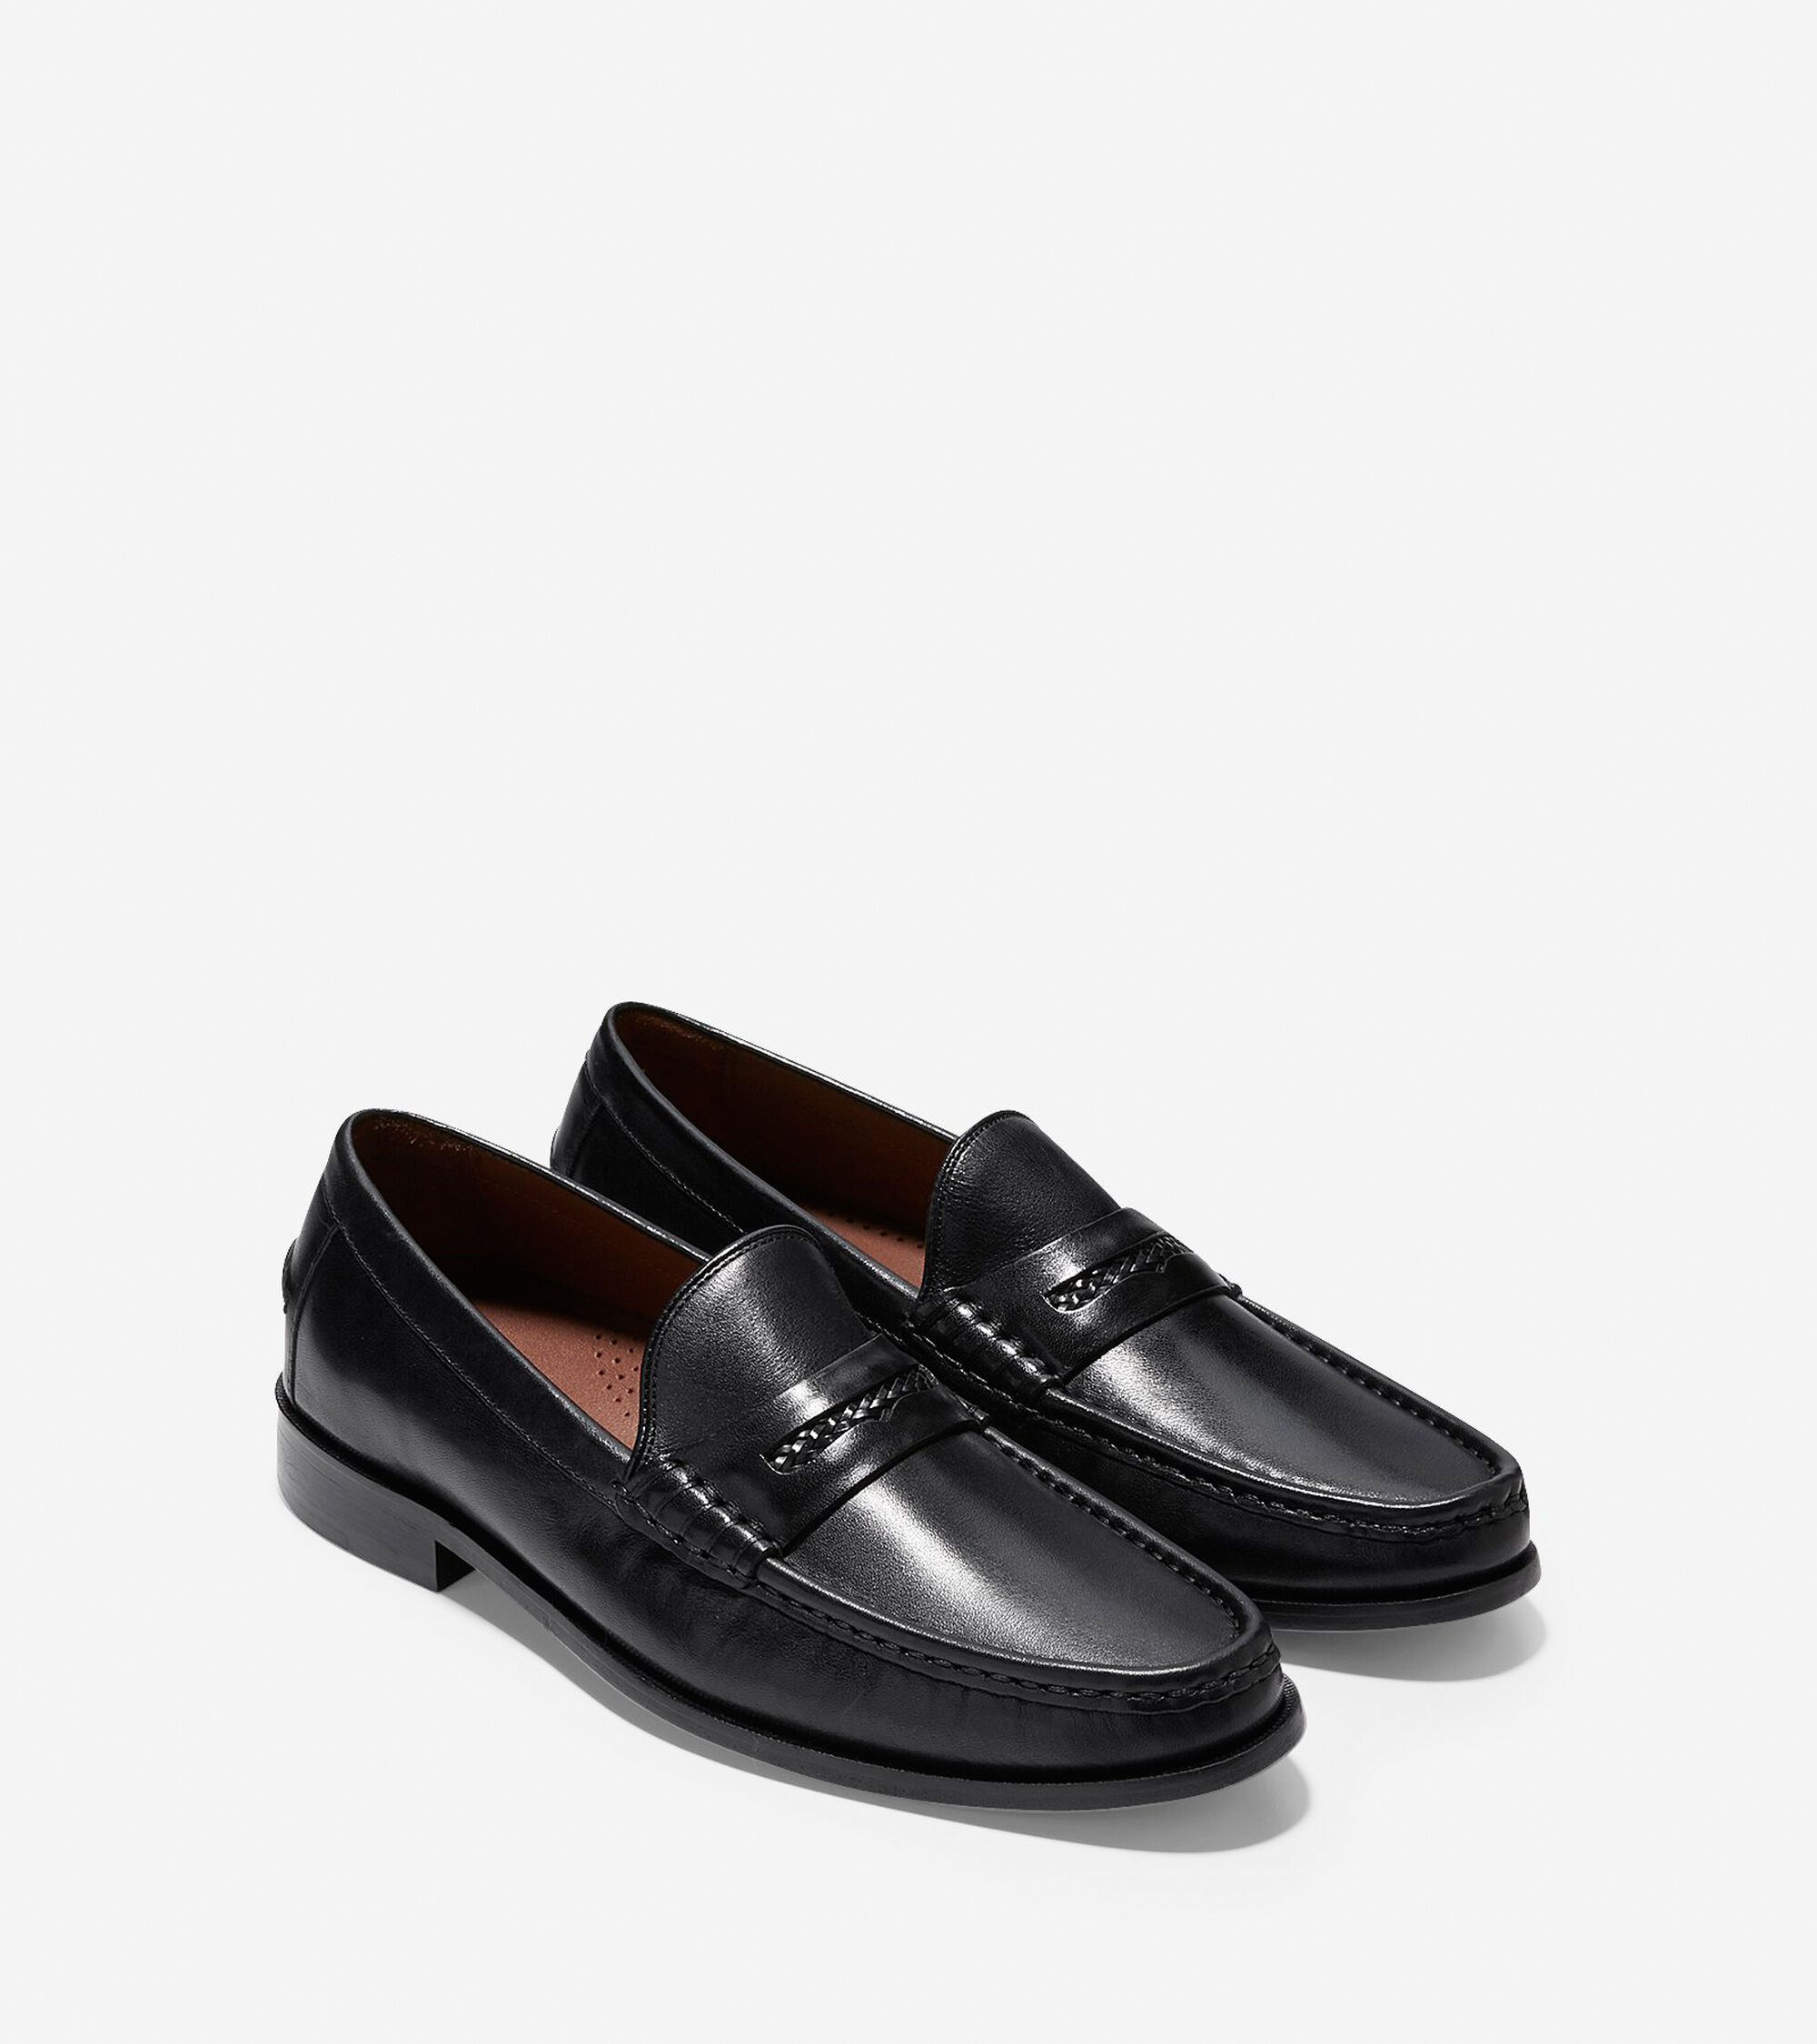 pinch men ★ cole haan pinch friday tassel loafer (men) @ update price nordstrom mens loafers amp slip ons ★ online deals shop for prices on sale, cole haan pinch friday tassel loafer (men) find our lowest possible price.